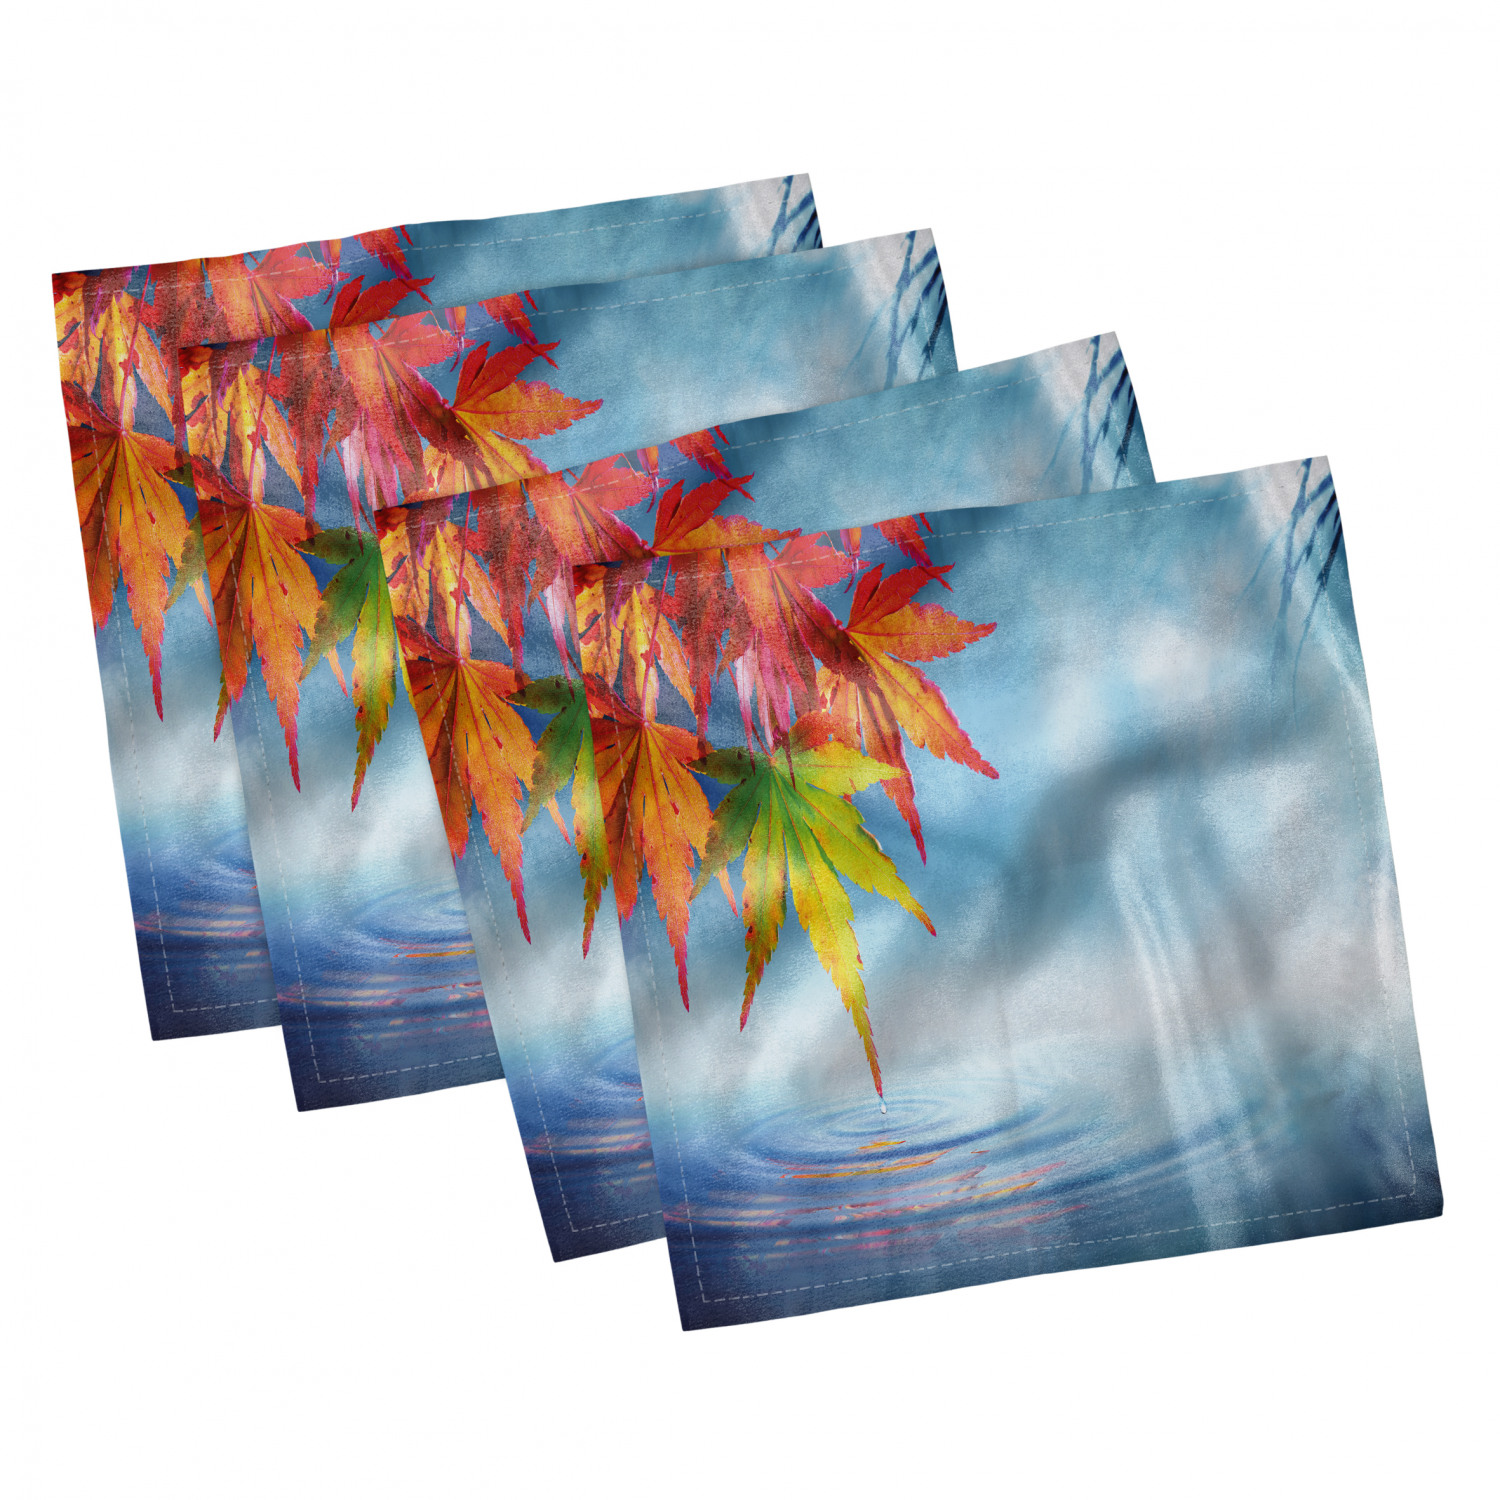 thumbnail 121 - Ambesonne-Leaves-Forest-Decorative-Satin-Napkins-Set-of-4-Party-Dinner-Fabric